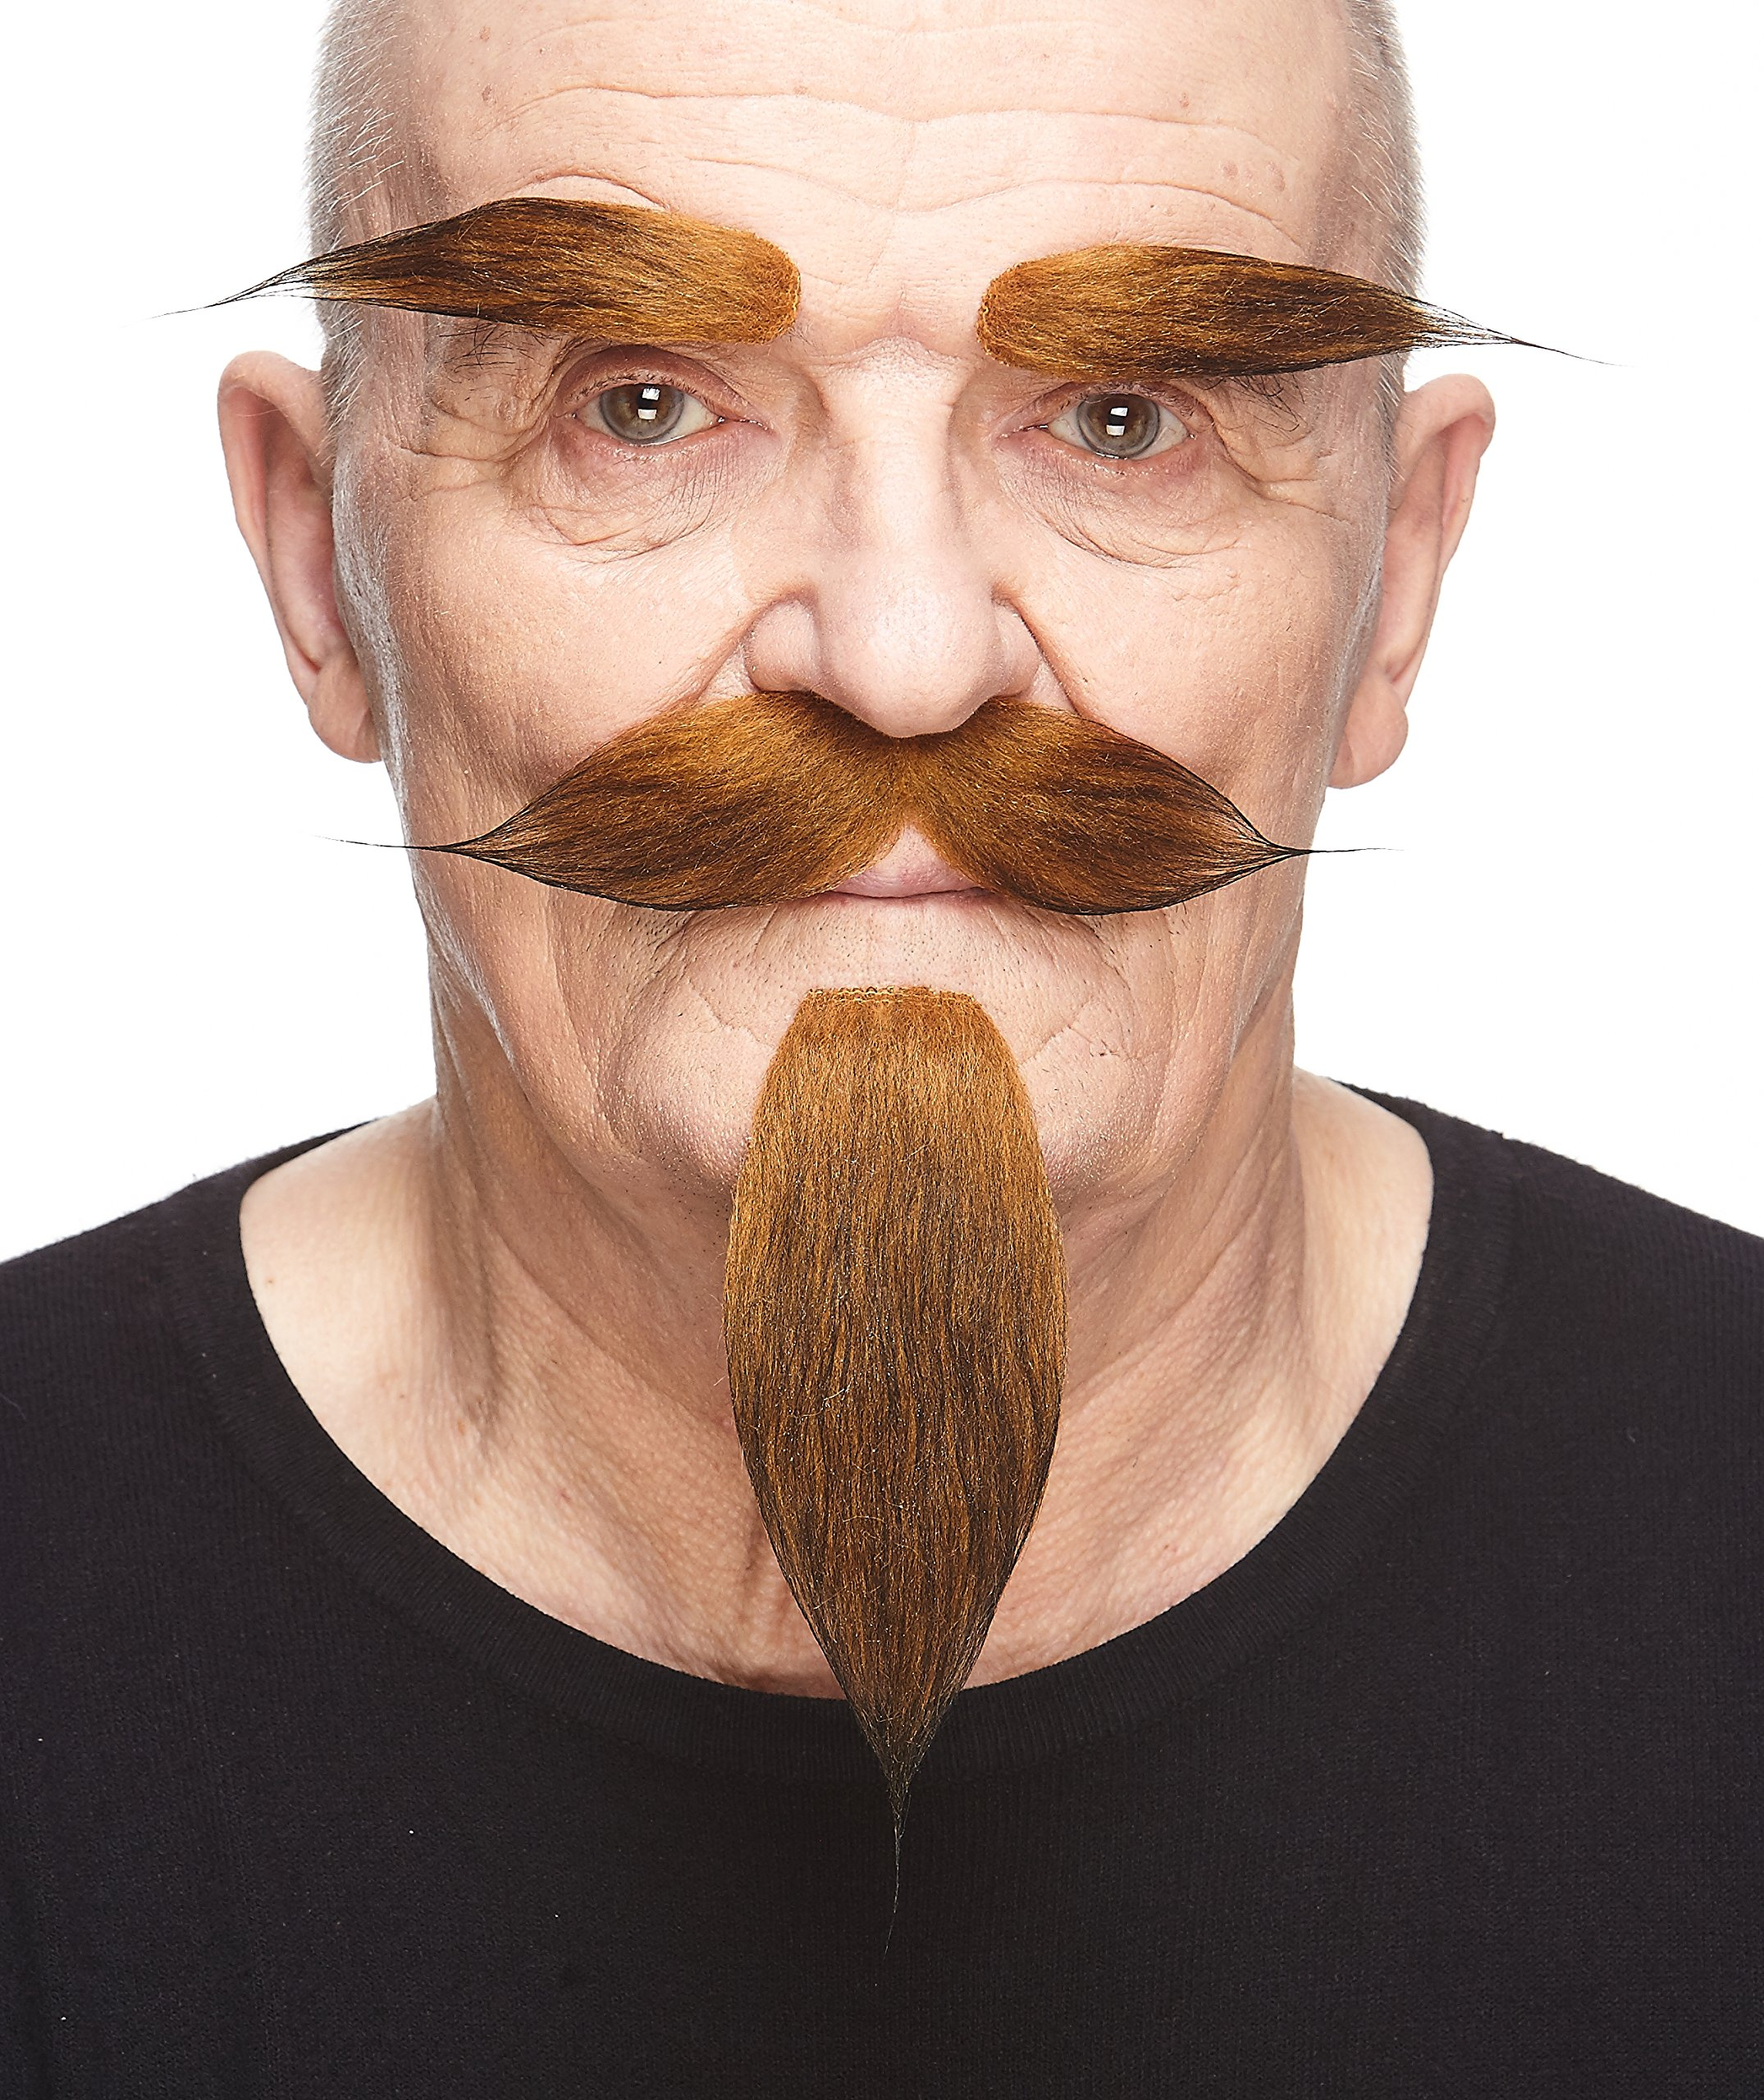 Mustaches Self Adhesive, Novelty, Hairy Russian Fake Beard, Fake Mustache and Fake Eyebrows, Ginger Color